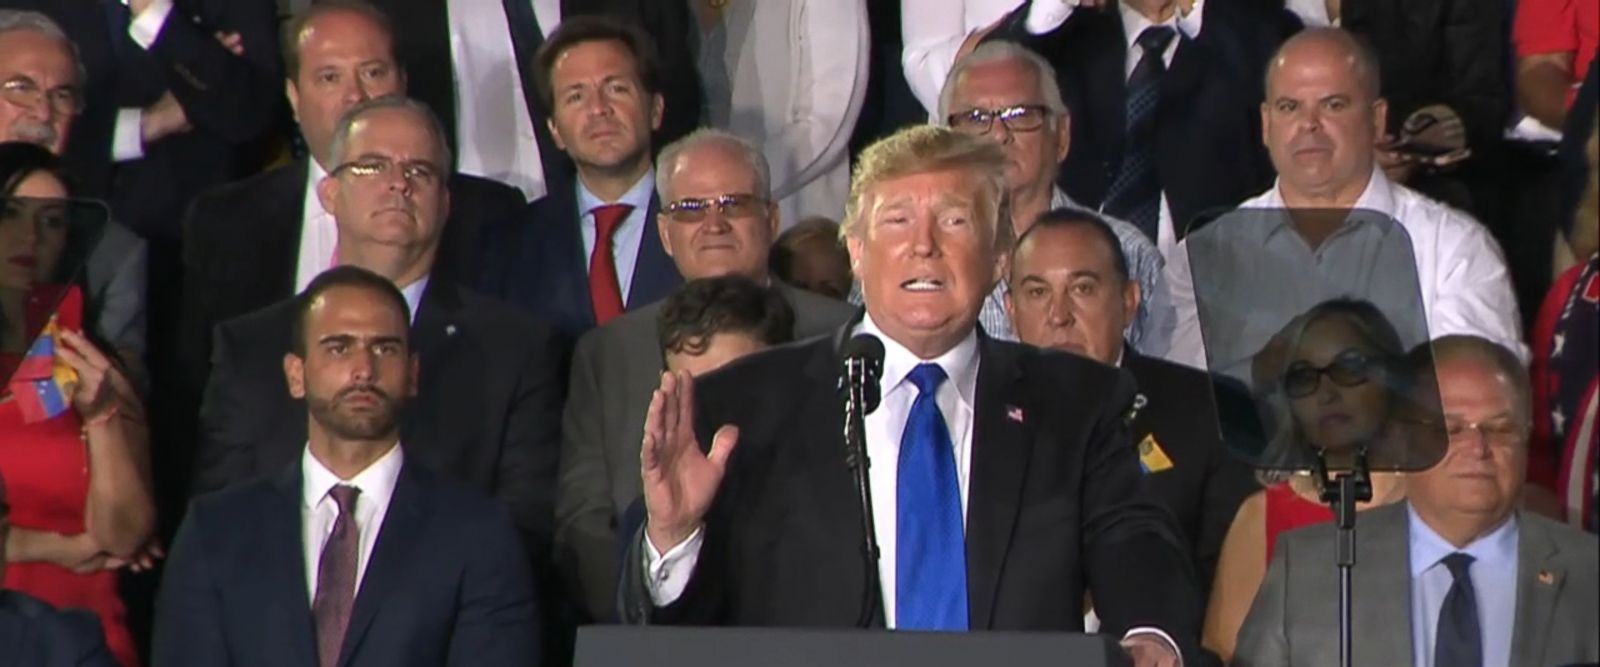 """""""He would rather see his people starve then give them aid,"""" President Trump said at an event in Miami."""